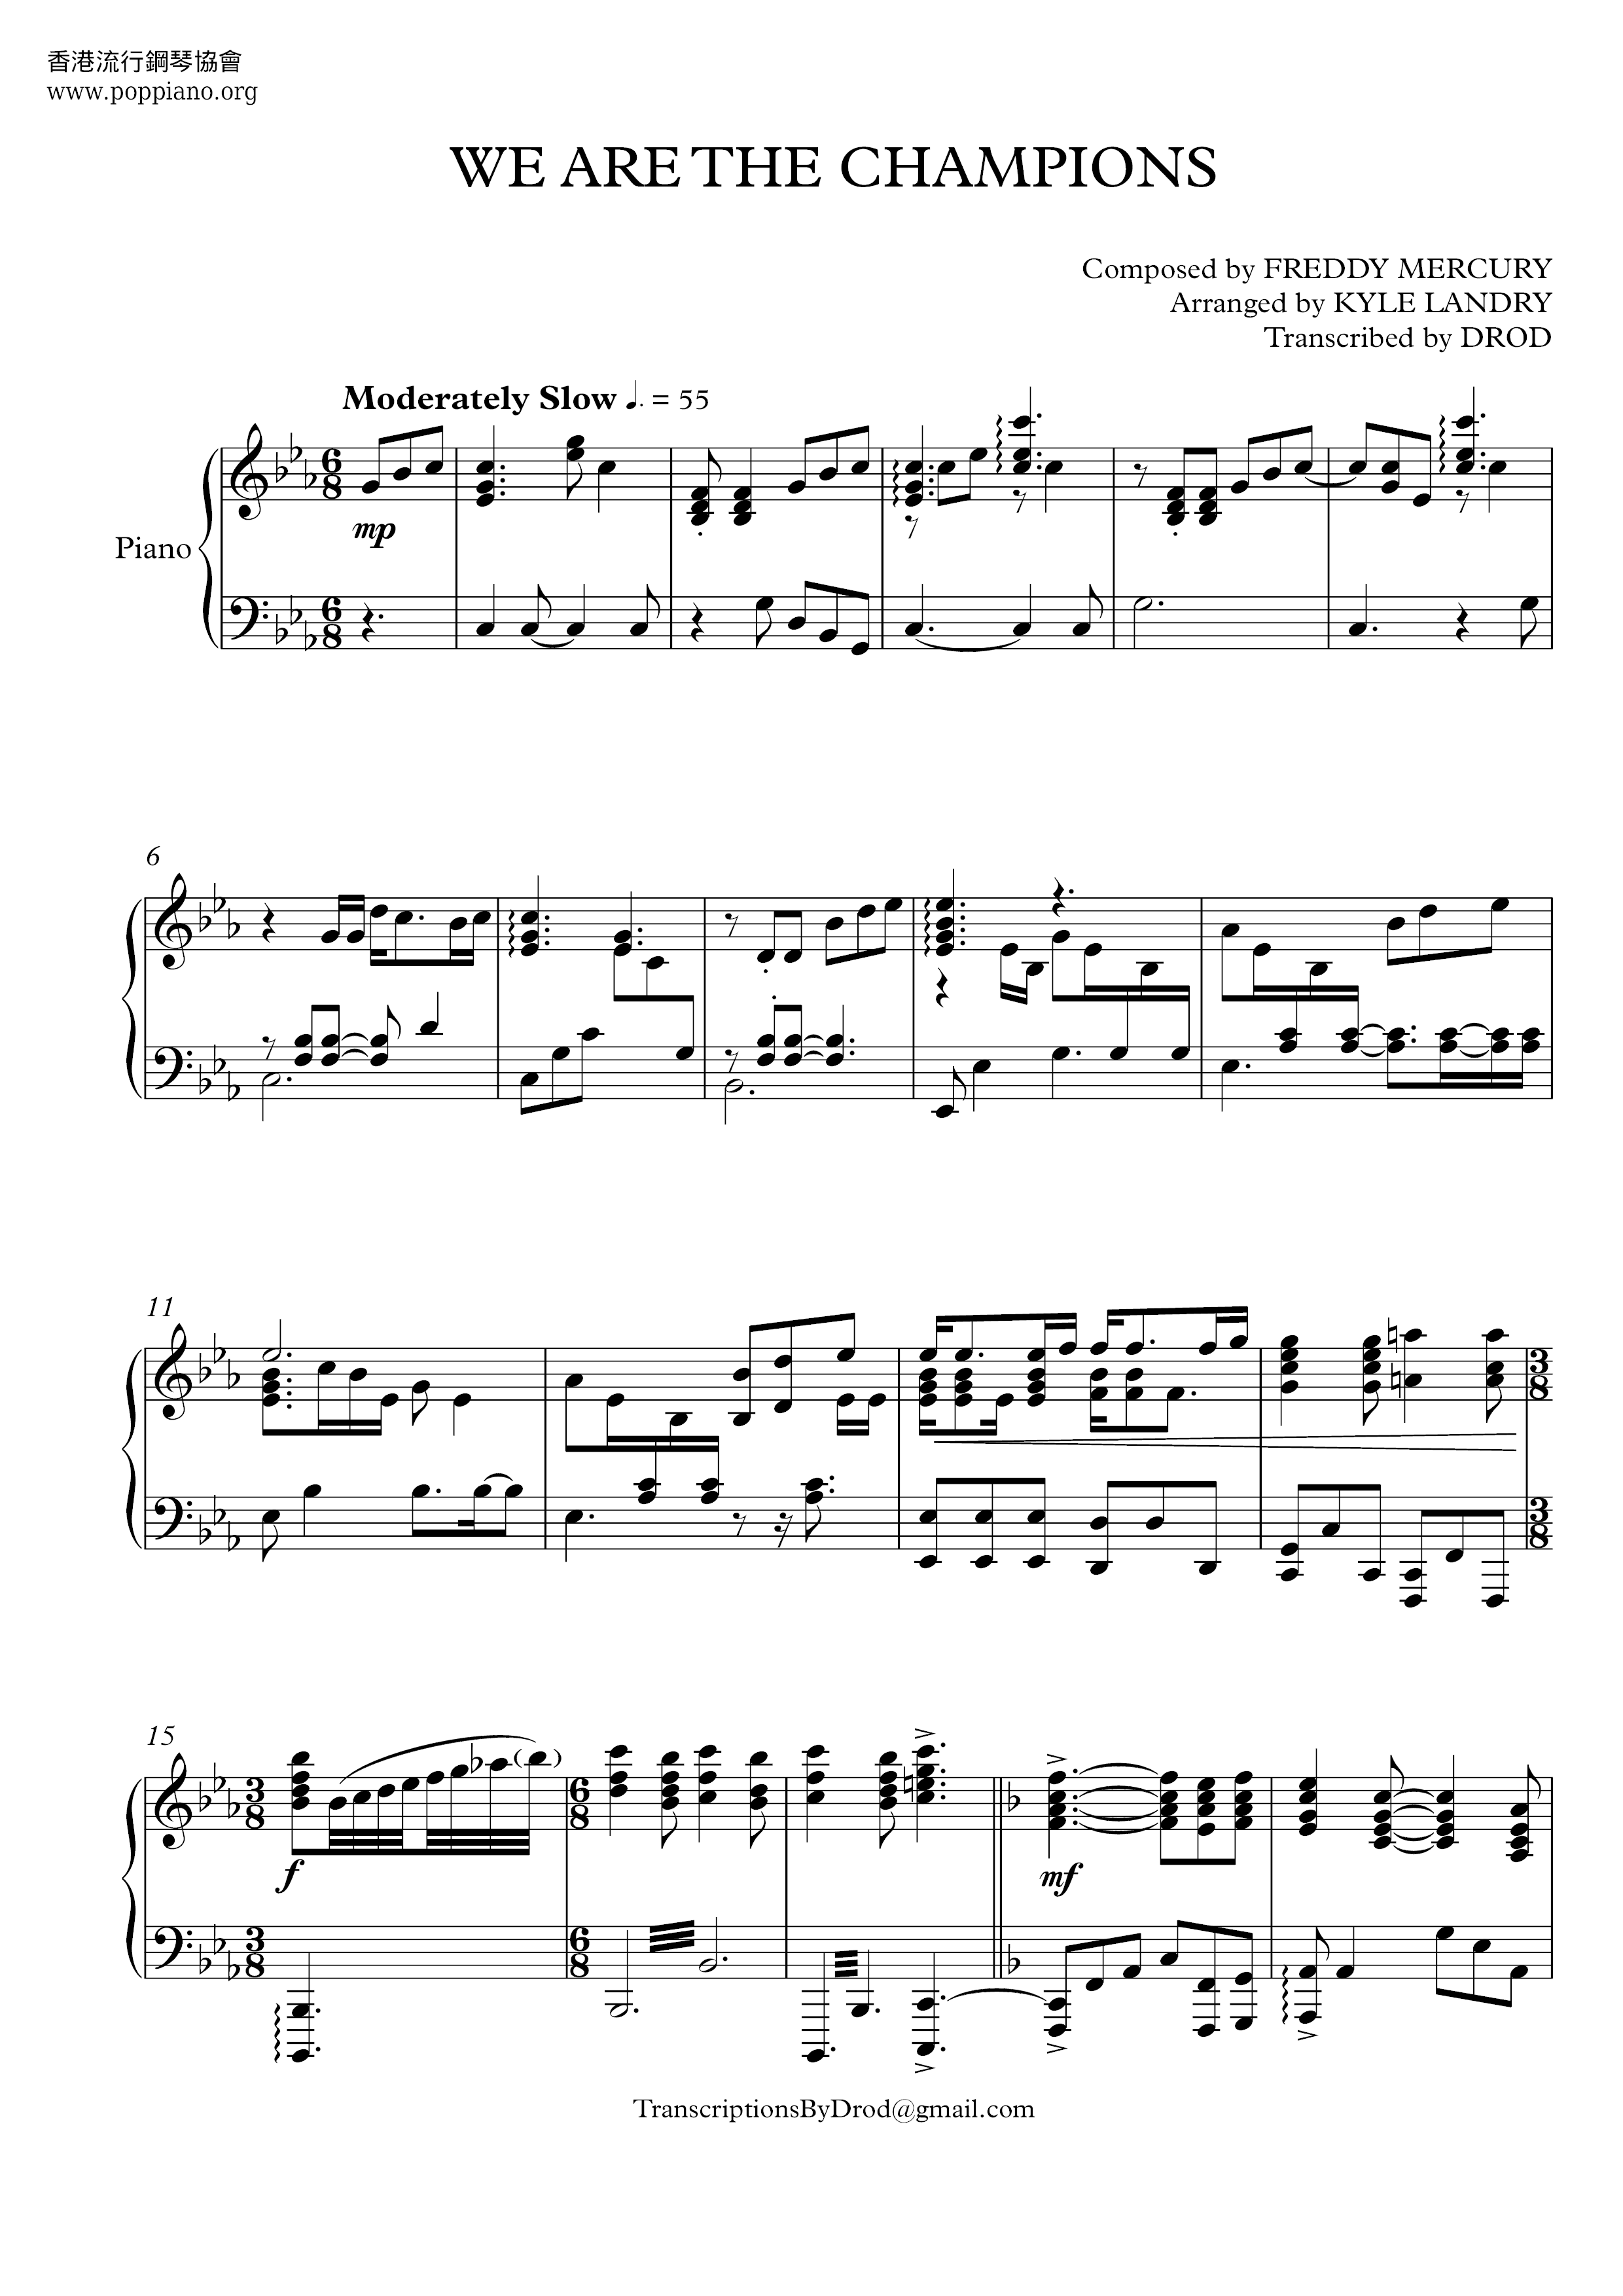 ☆ queen-we are the champions sheet music pdf, (クイーン) - free score download ☆  www.poppiano.org